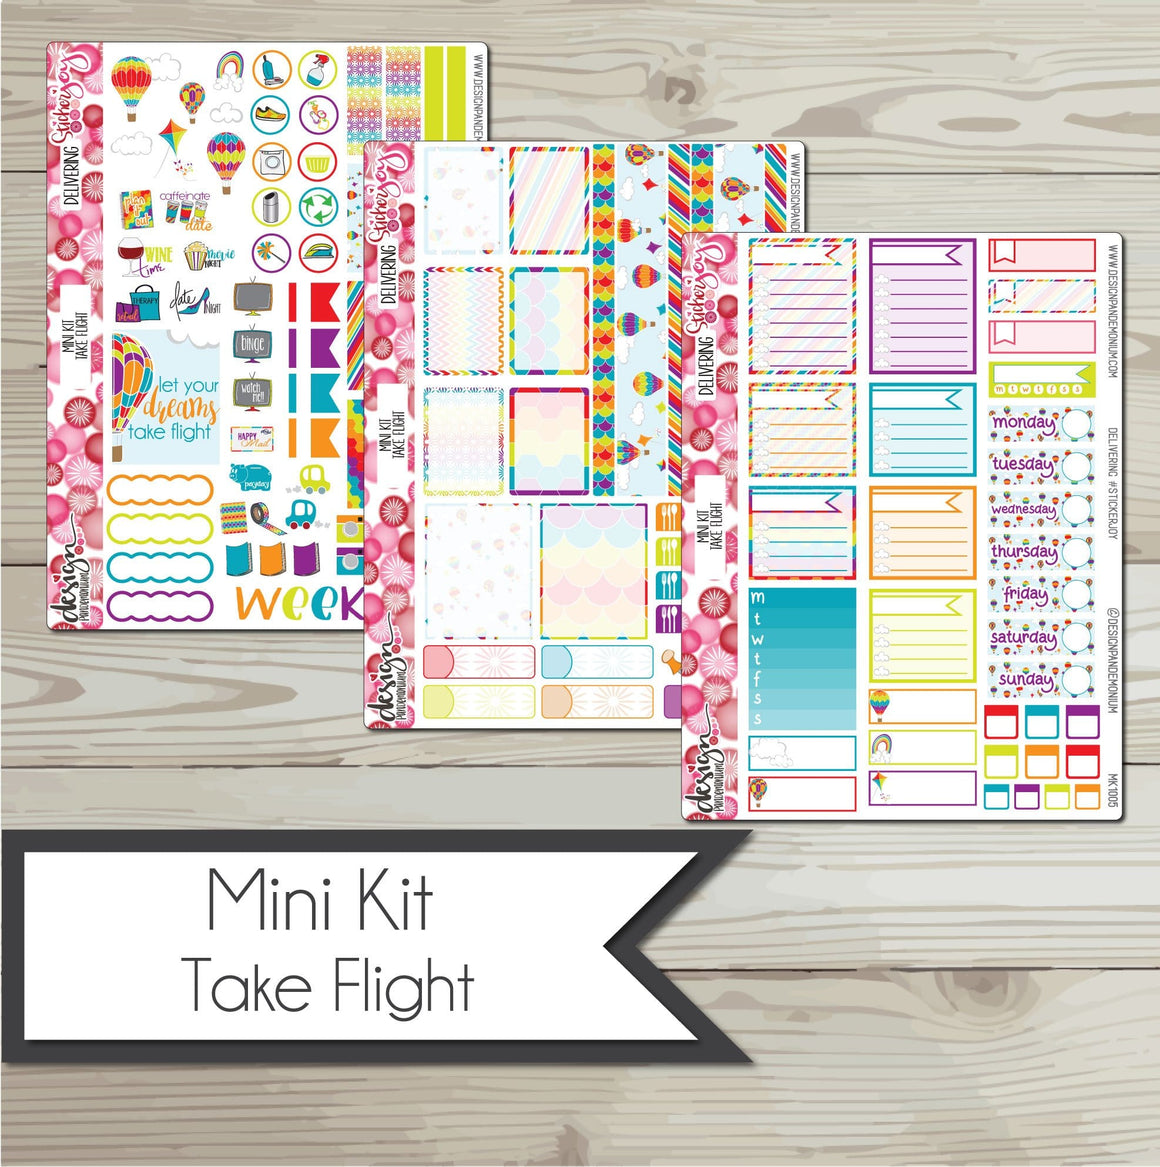 Mini Kit - Take Flight